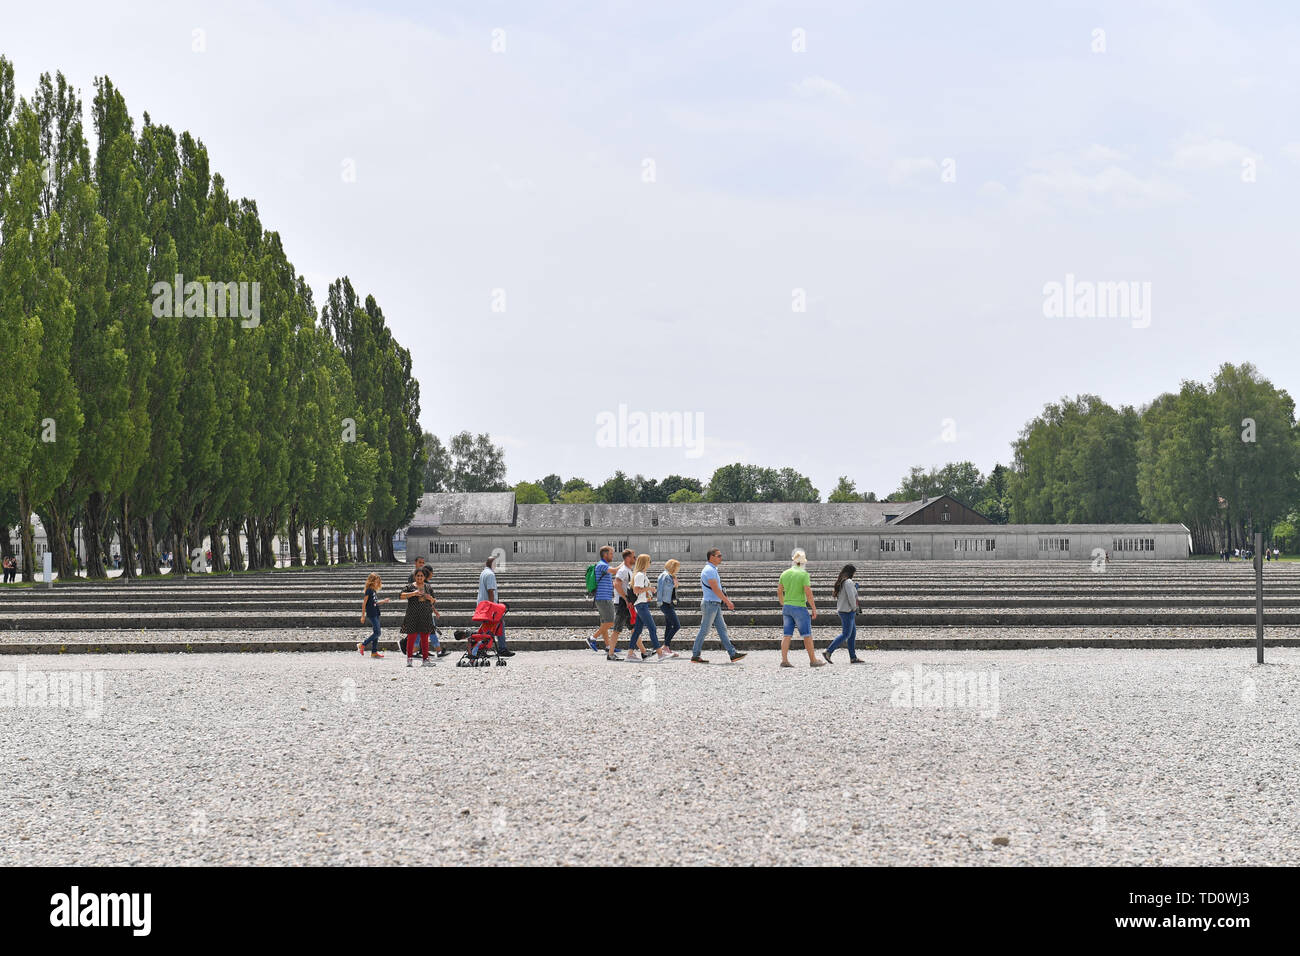 Dachau, Deutschland. 10th June, 2019. Visitors in the memorial concentration camp Dachau- Gedenkstaette. 1933, 1945, 3, antisewithism, exterminate, extermination, Bavaria, Dachau, deportation, German, German history, Germany, third, Europe, fascism, fascists, fascist, commemoration, memorial site, history, Jew, Jews, concentration camp, concentration camp, memorial, National Socialism, Nazi, Nazis, Nazi, Reich, Crime, Past, Annihilation, Extermination Camp Usual worldwide Credit: dpa/Alamy Live News - Stock Image